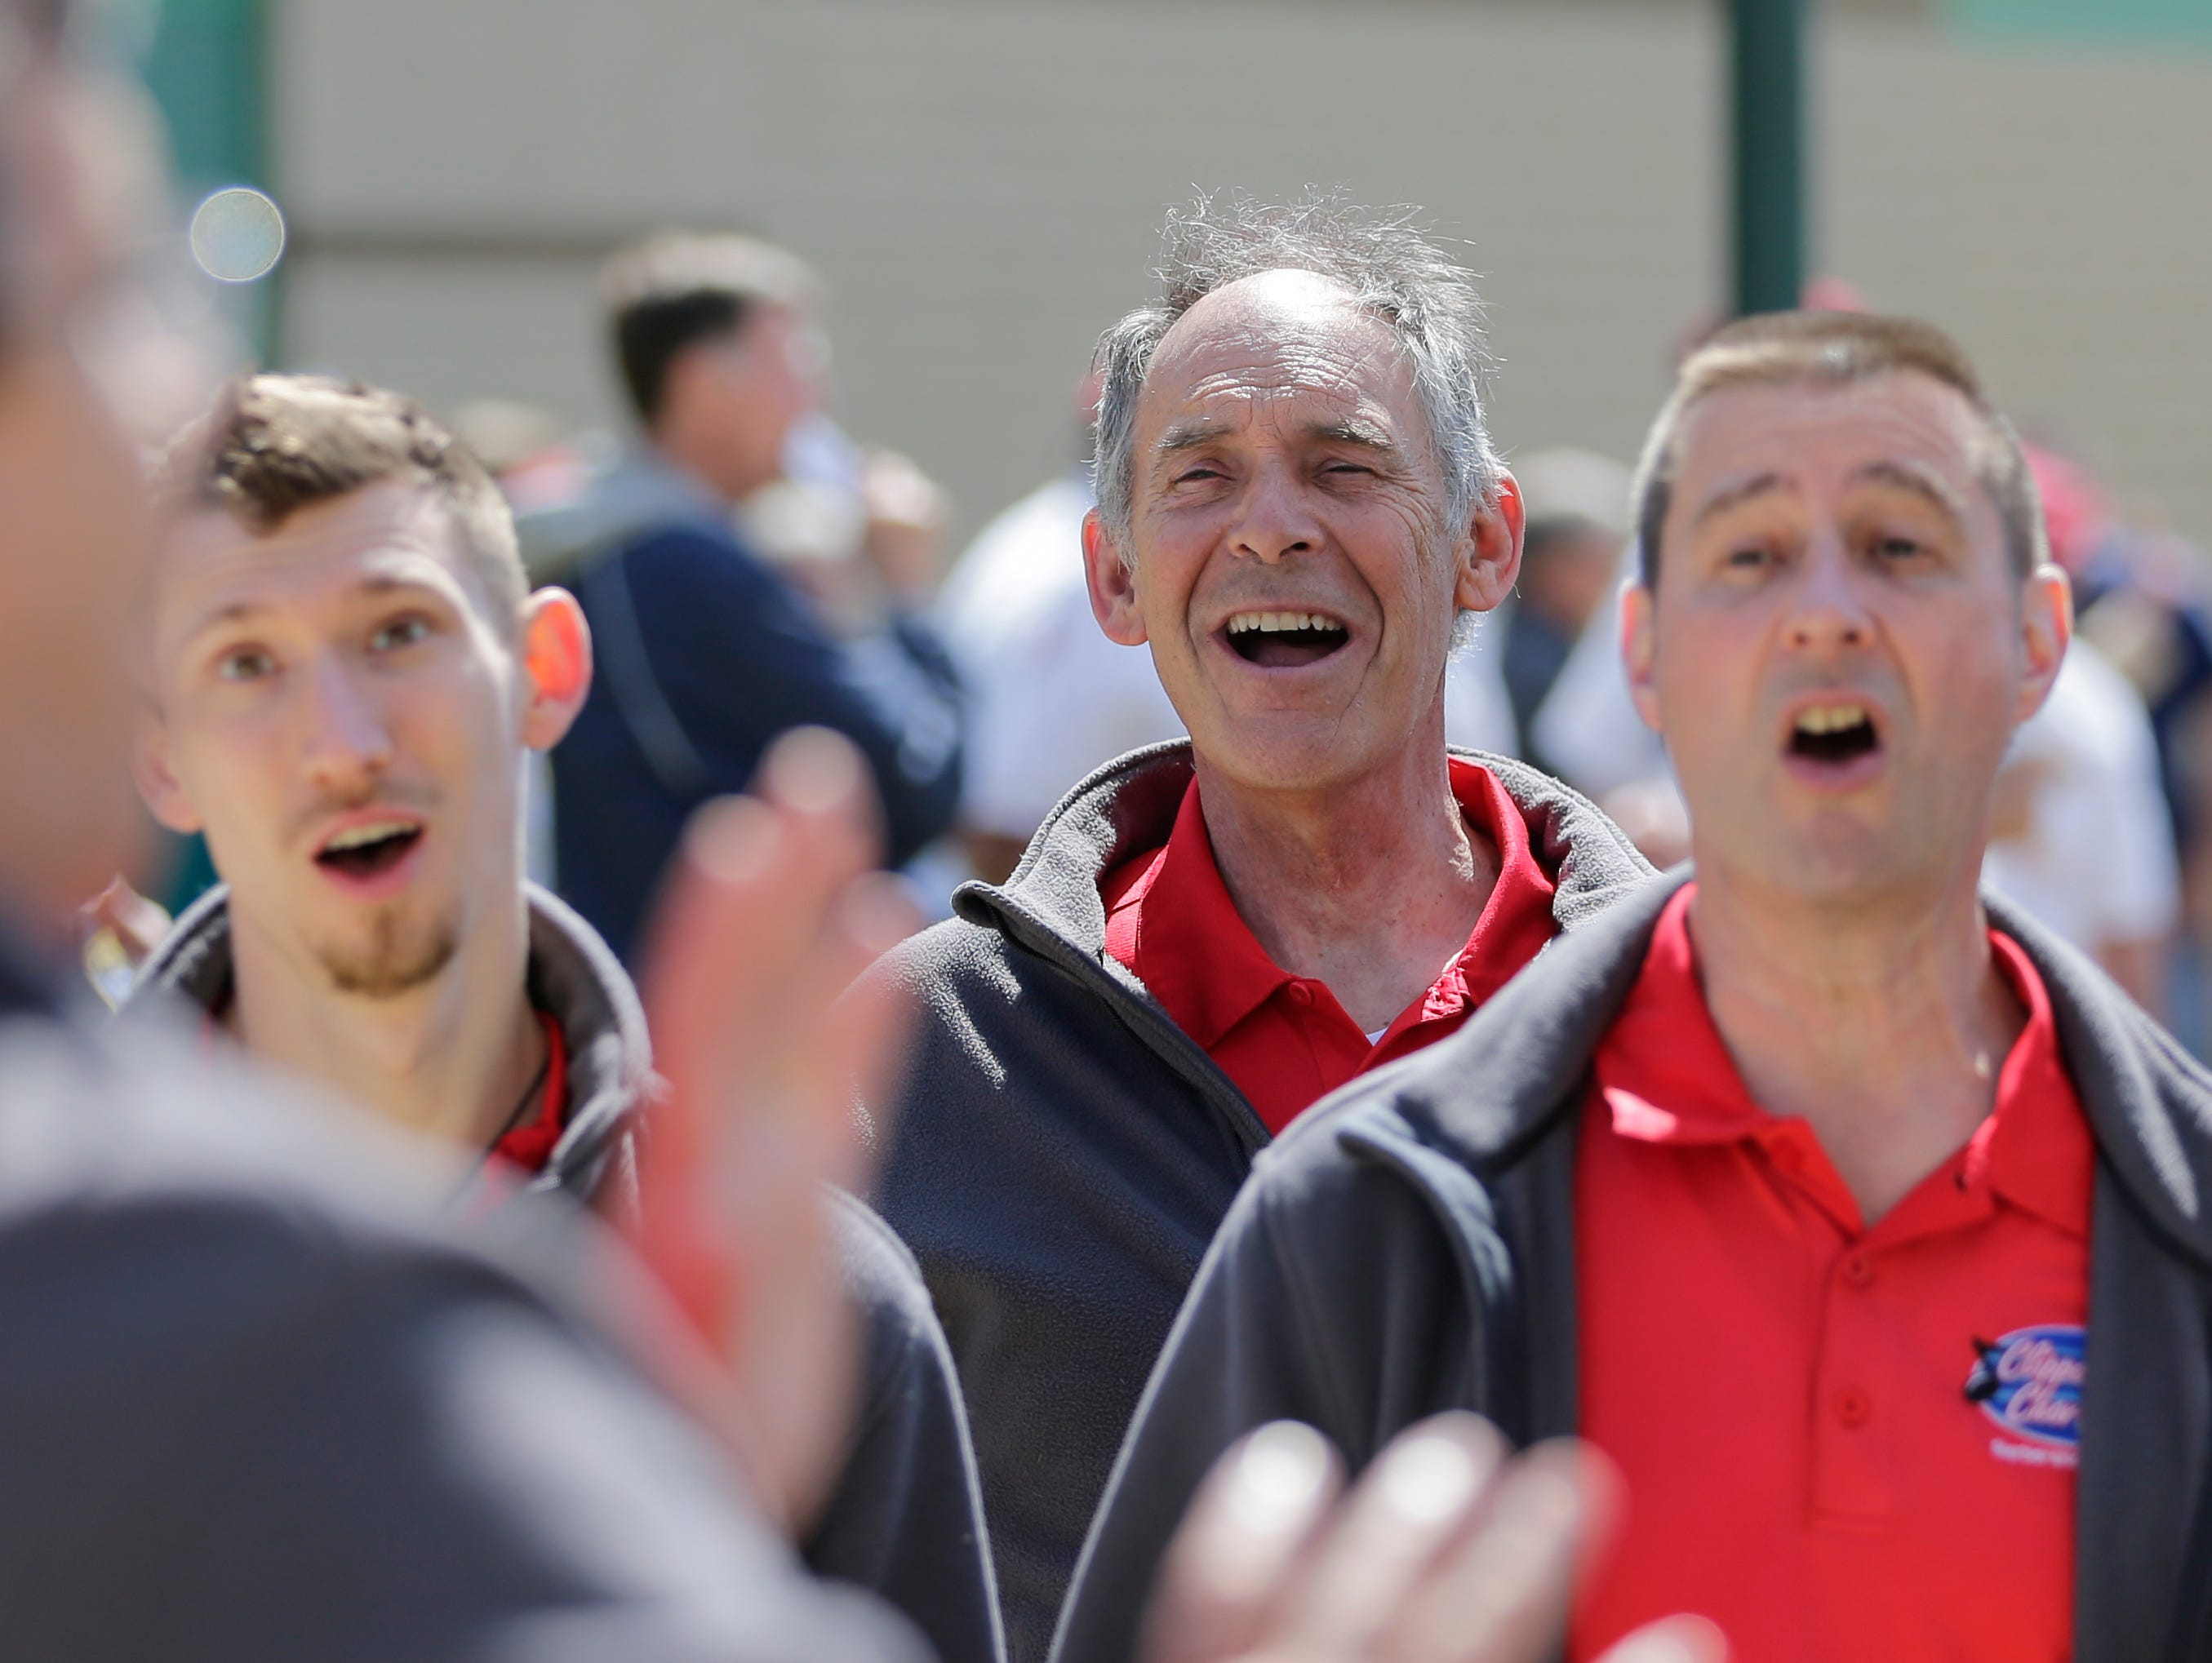 The Clipper City Chordsmen sing during the Manitowoc County Peace Officer Memorial Service Wednesday, May 15, 2019, in Manitowoc, Wis. Joshua Clark/USA TODAY NETWORK-Wisconsin